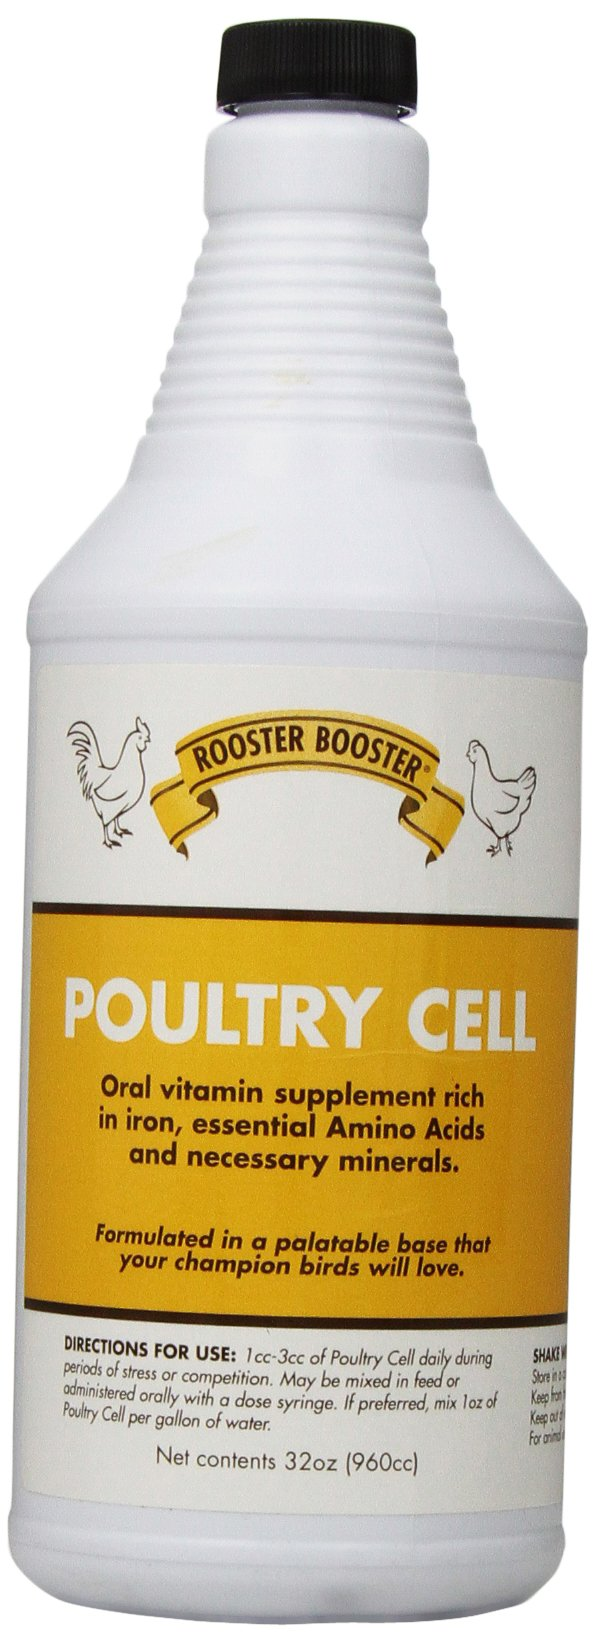 Rooster Booster Poultry Cell, 32-Ounce by Rooster Booster